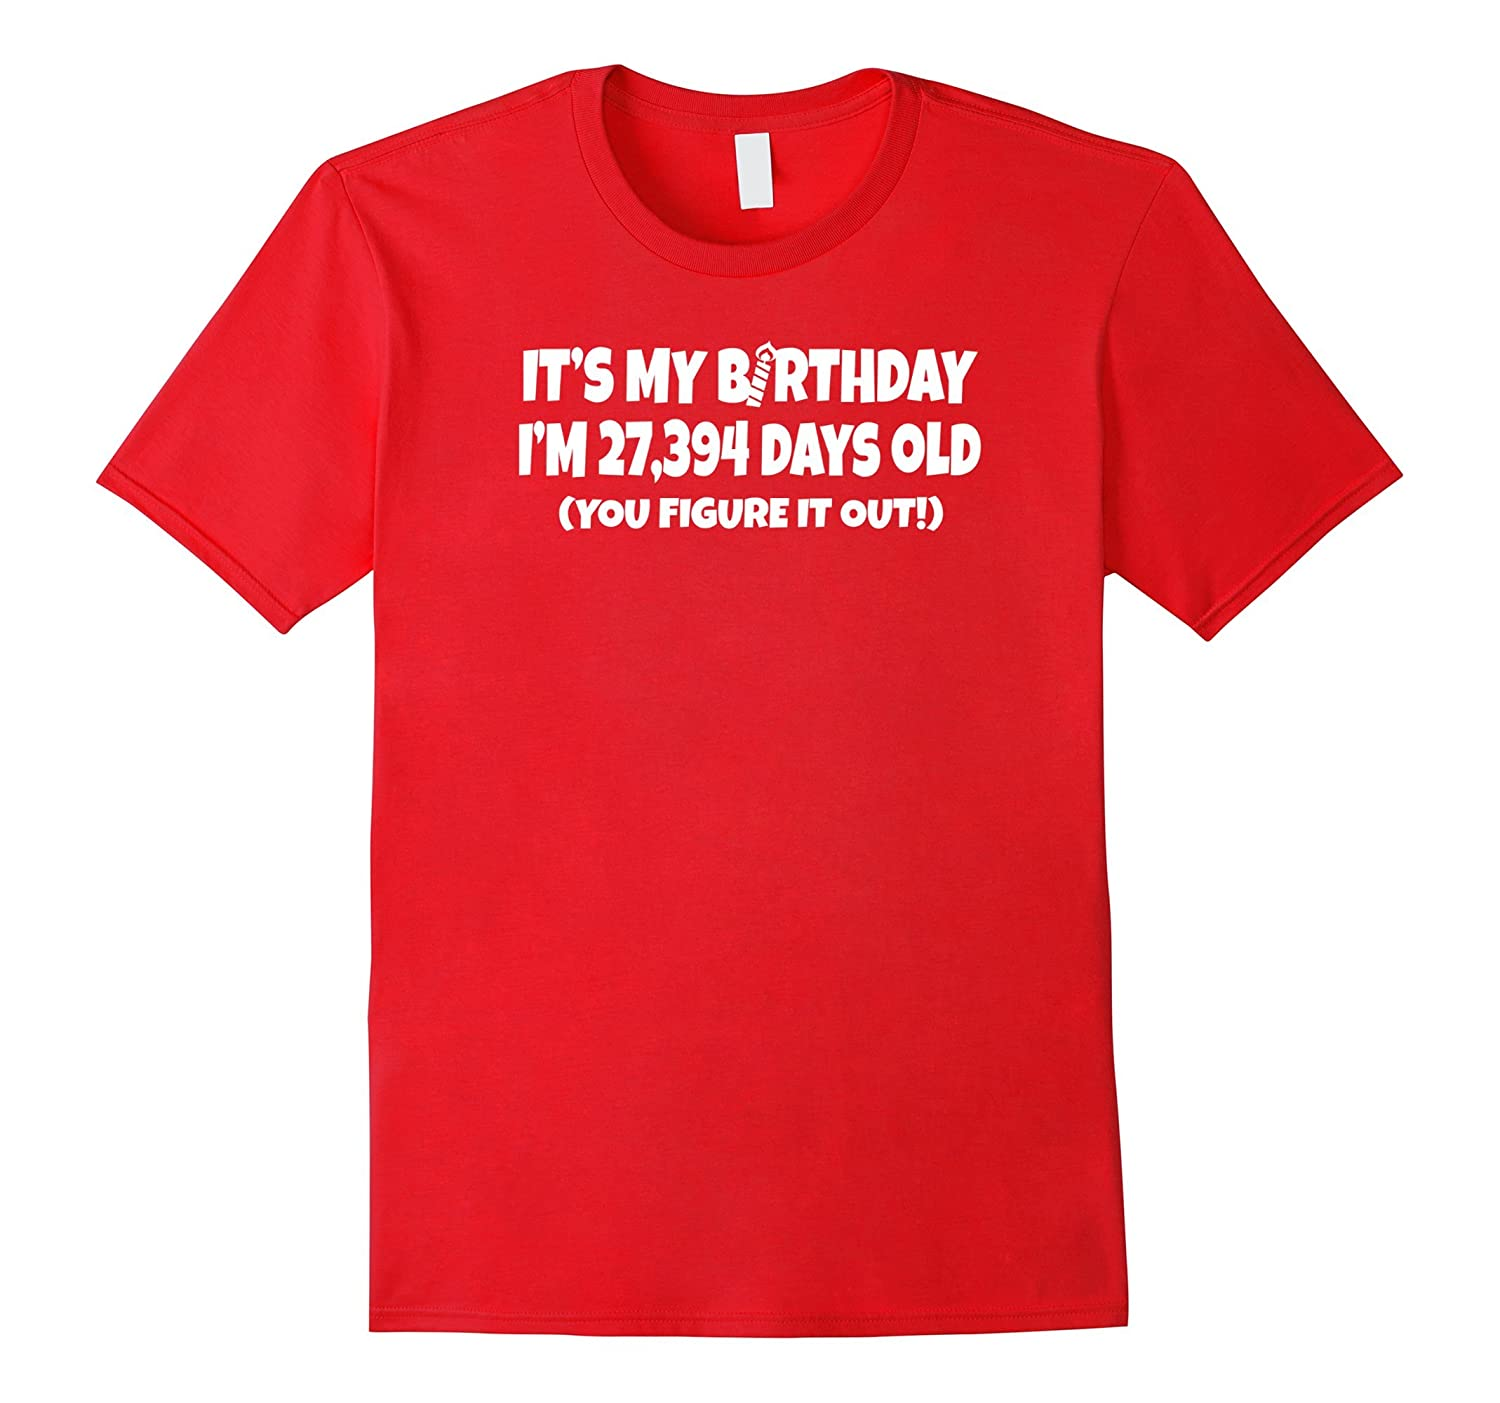 I Am 27,394 Days Old - Happy 75th Birthday T Shirts-FL